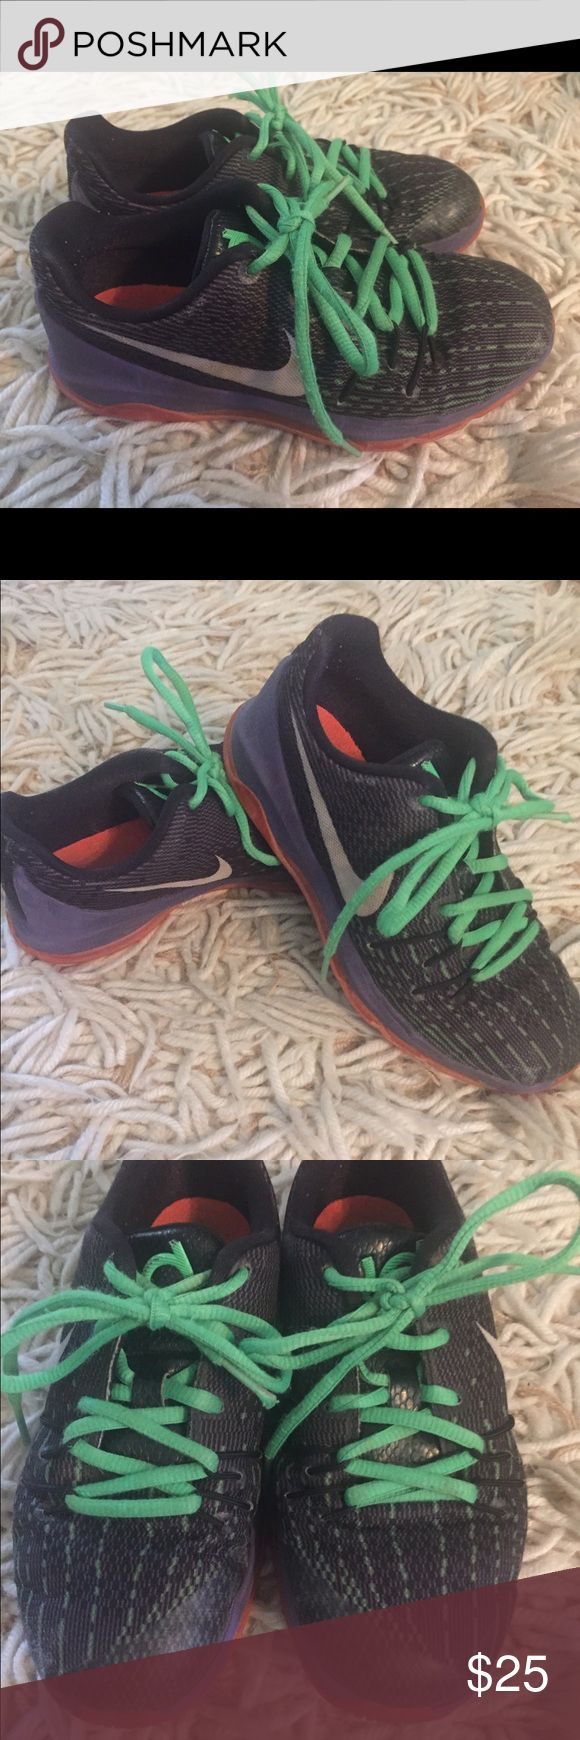 Boys KD sneakers Black and green KD's with Purple and orange soles Nike Shoes Sneakers